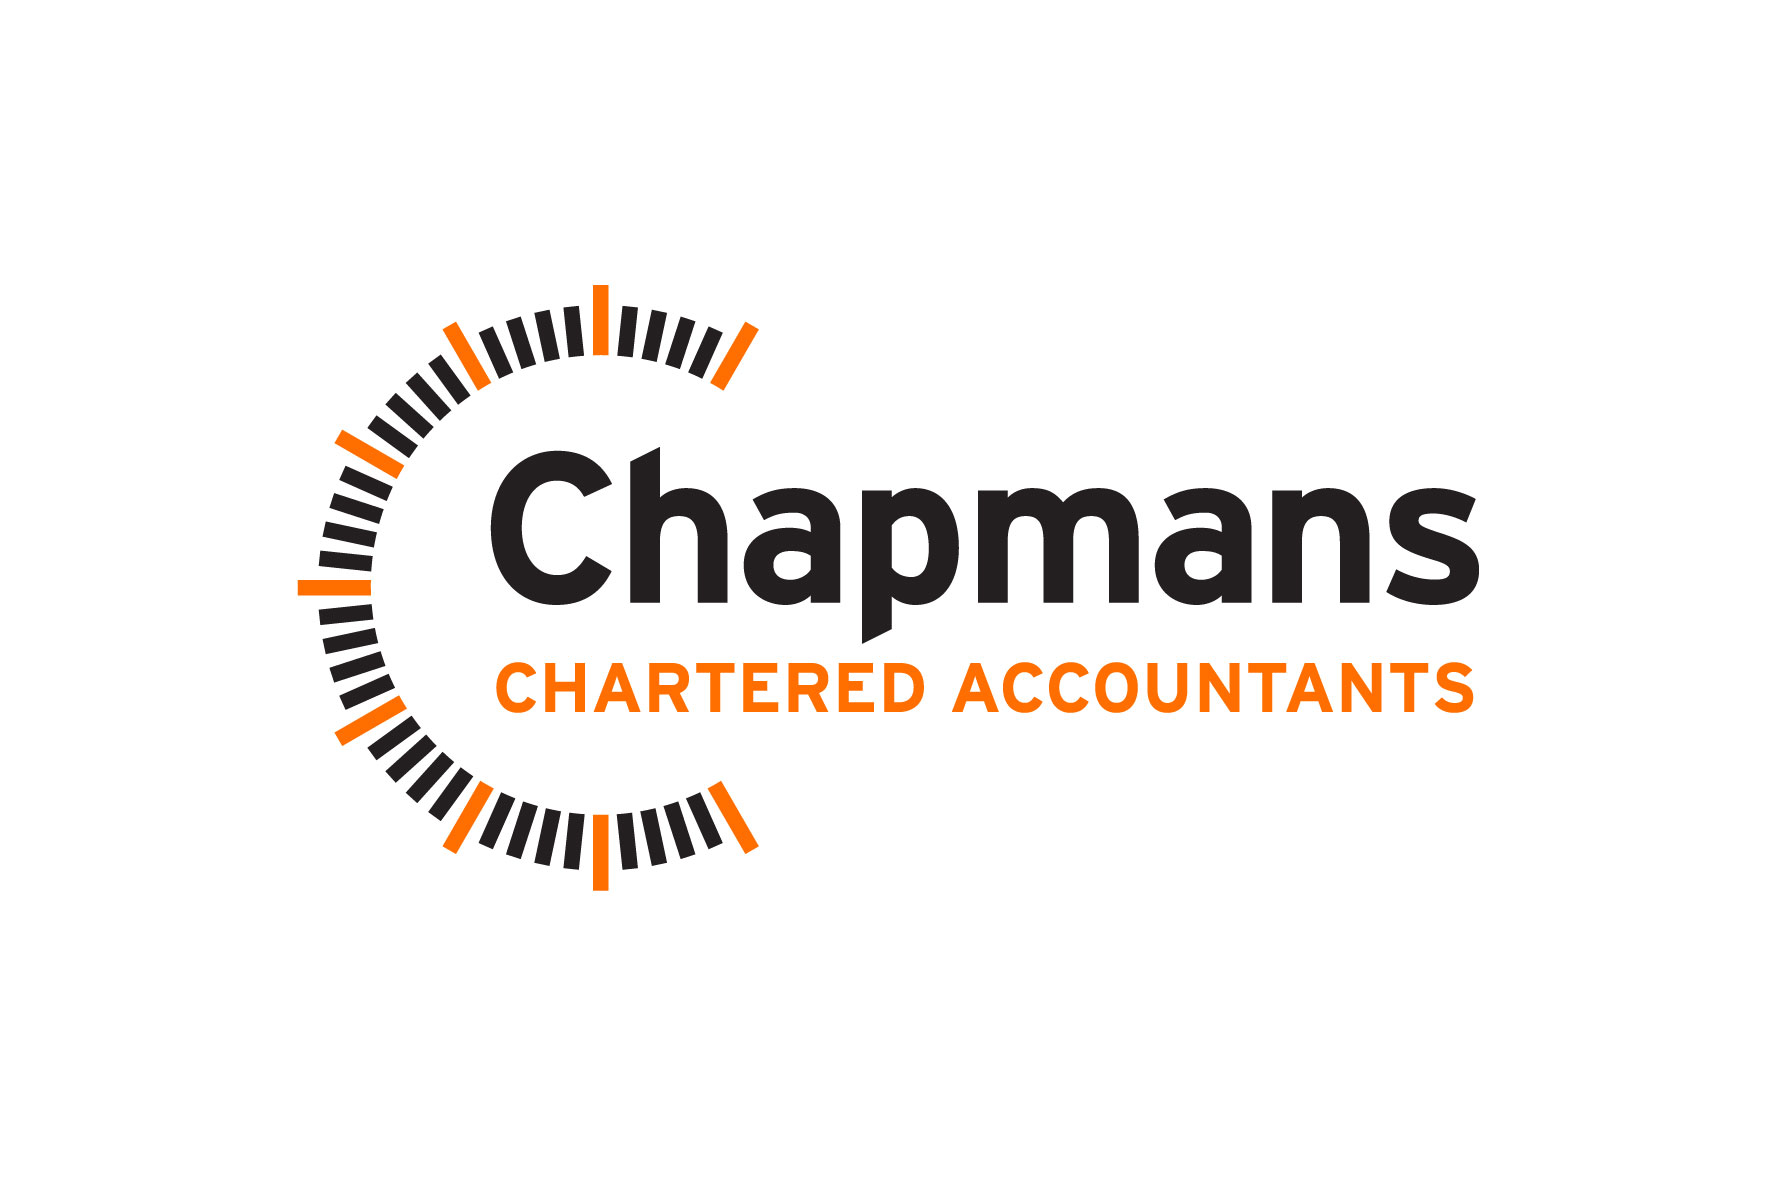 Chapmans Chartered Accountants Limited